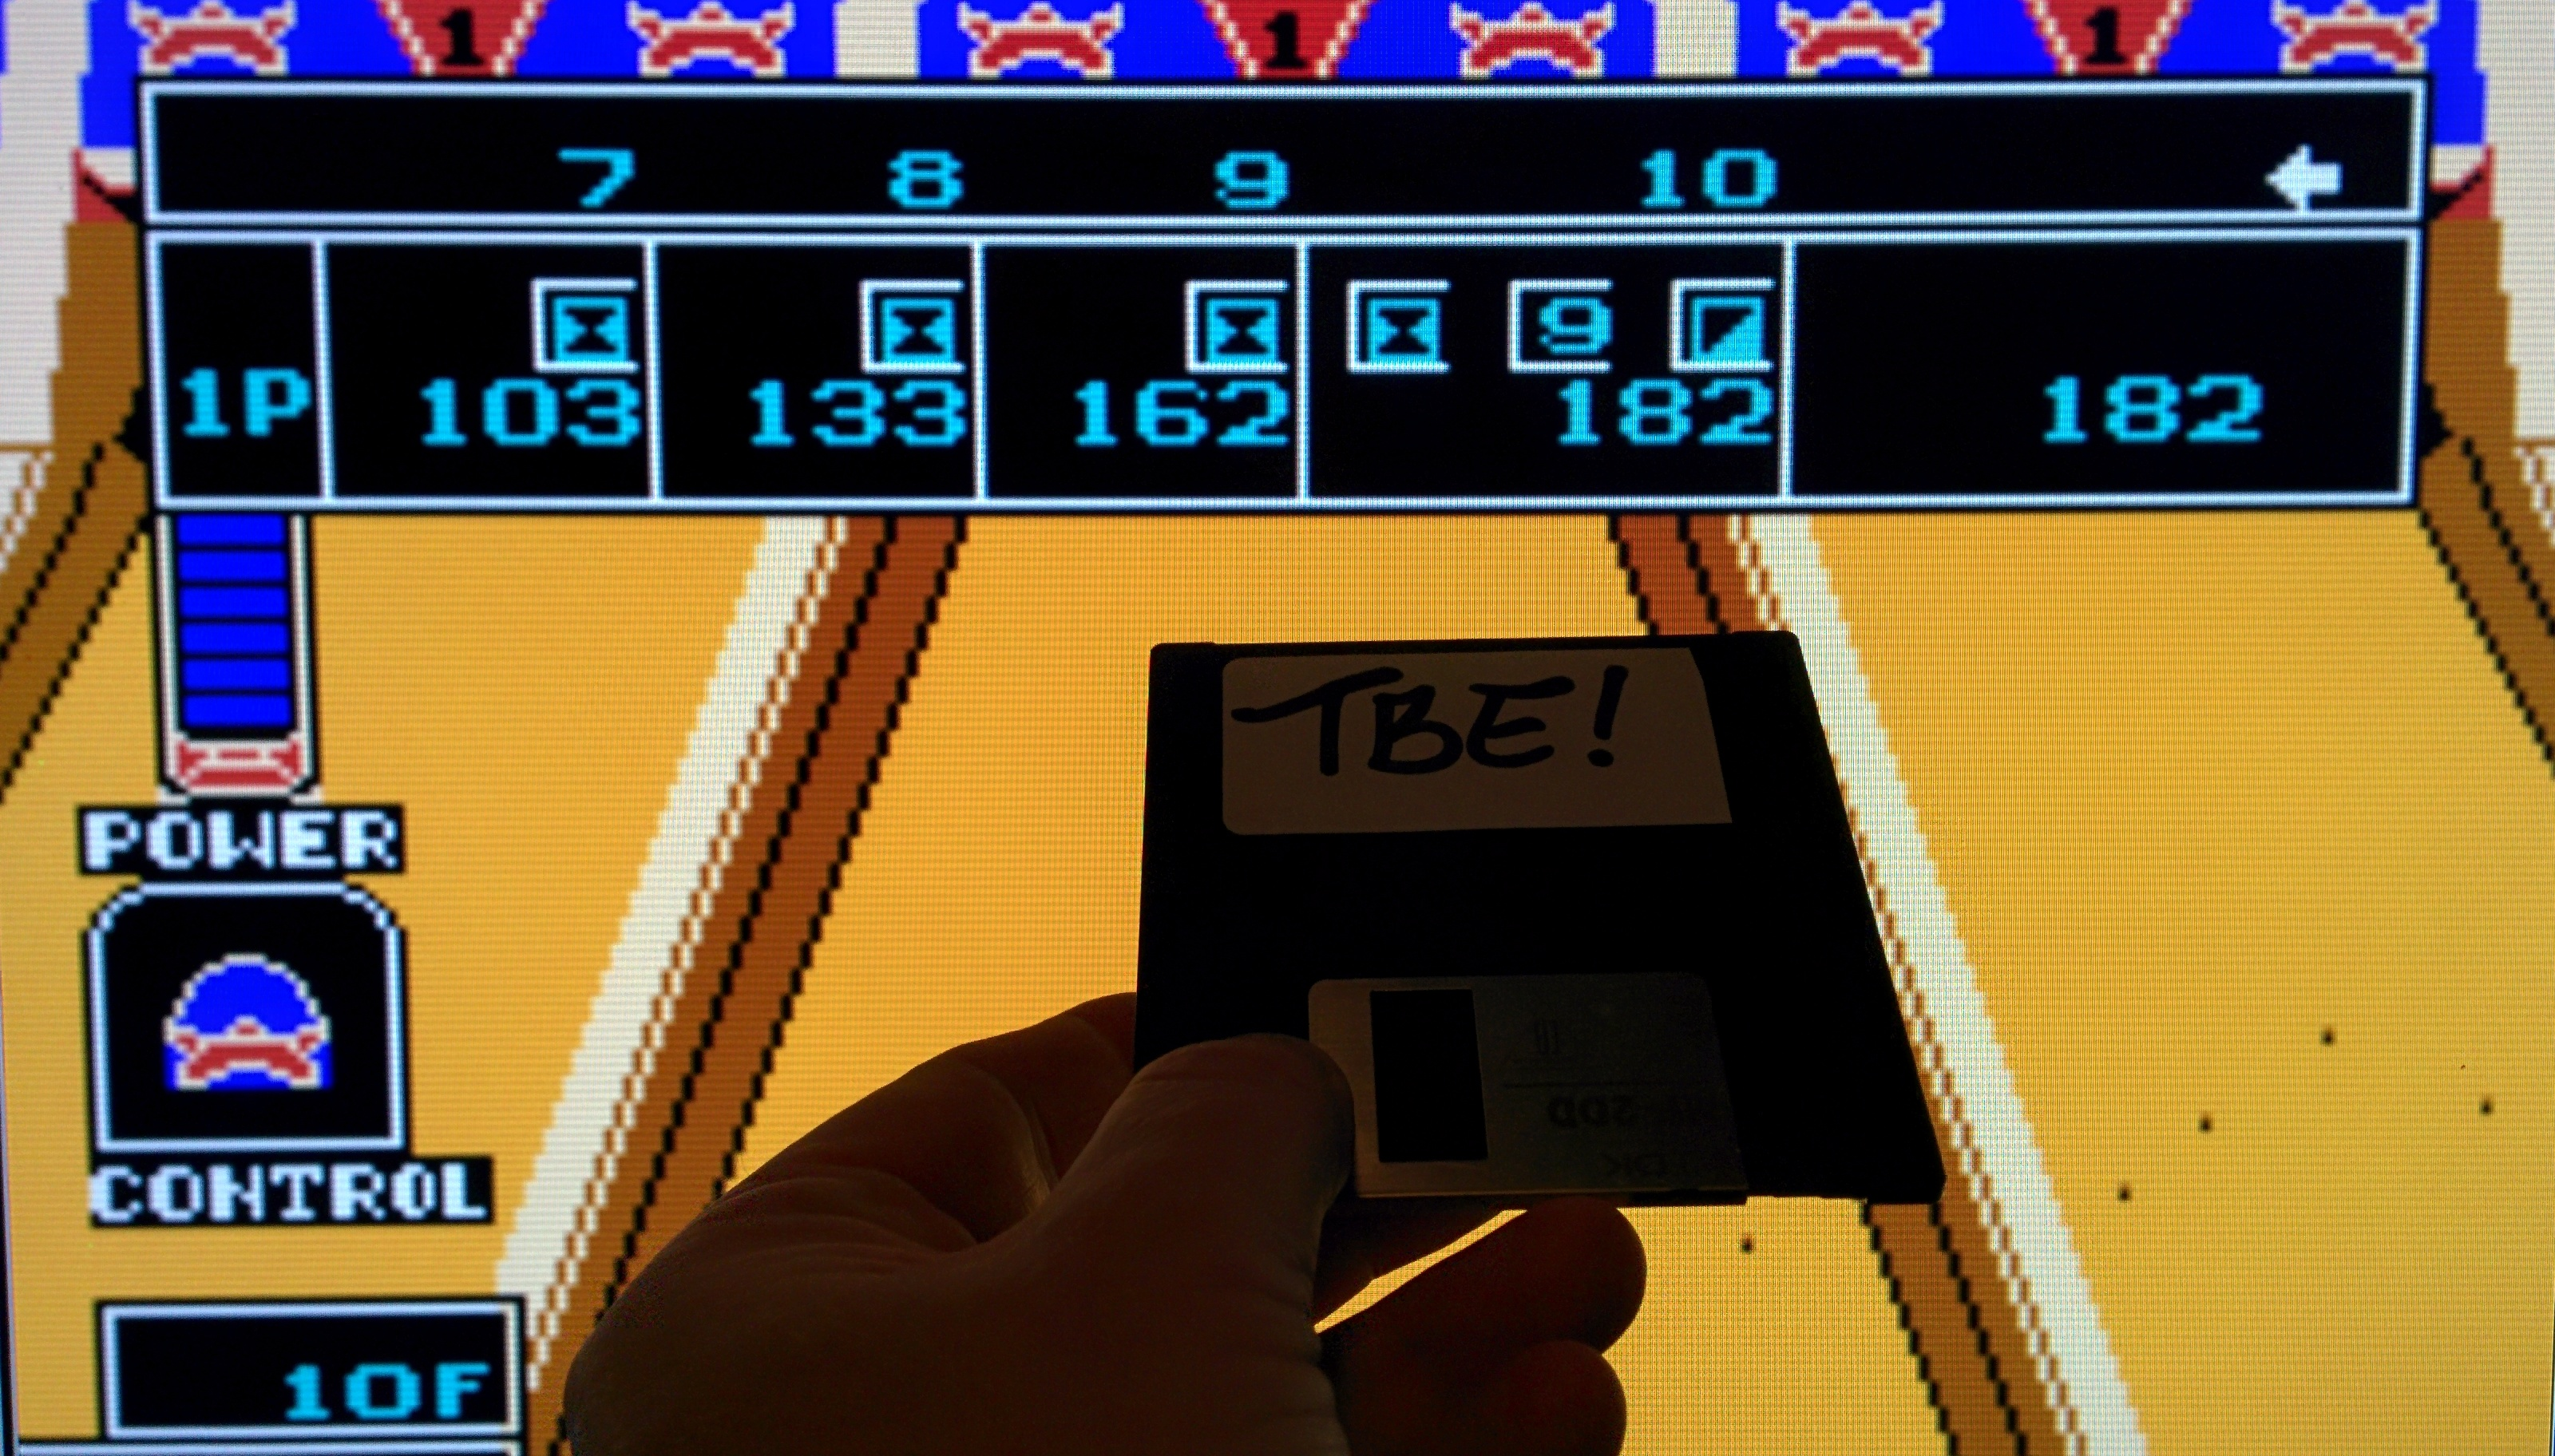 Sixx: Championship Bowling (NES/Famicom Emulated) 182 points on 2014-11-29 13:51:51